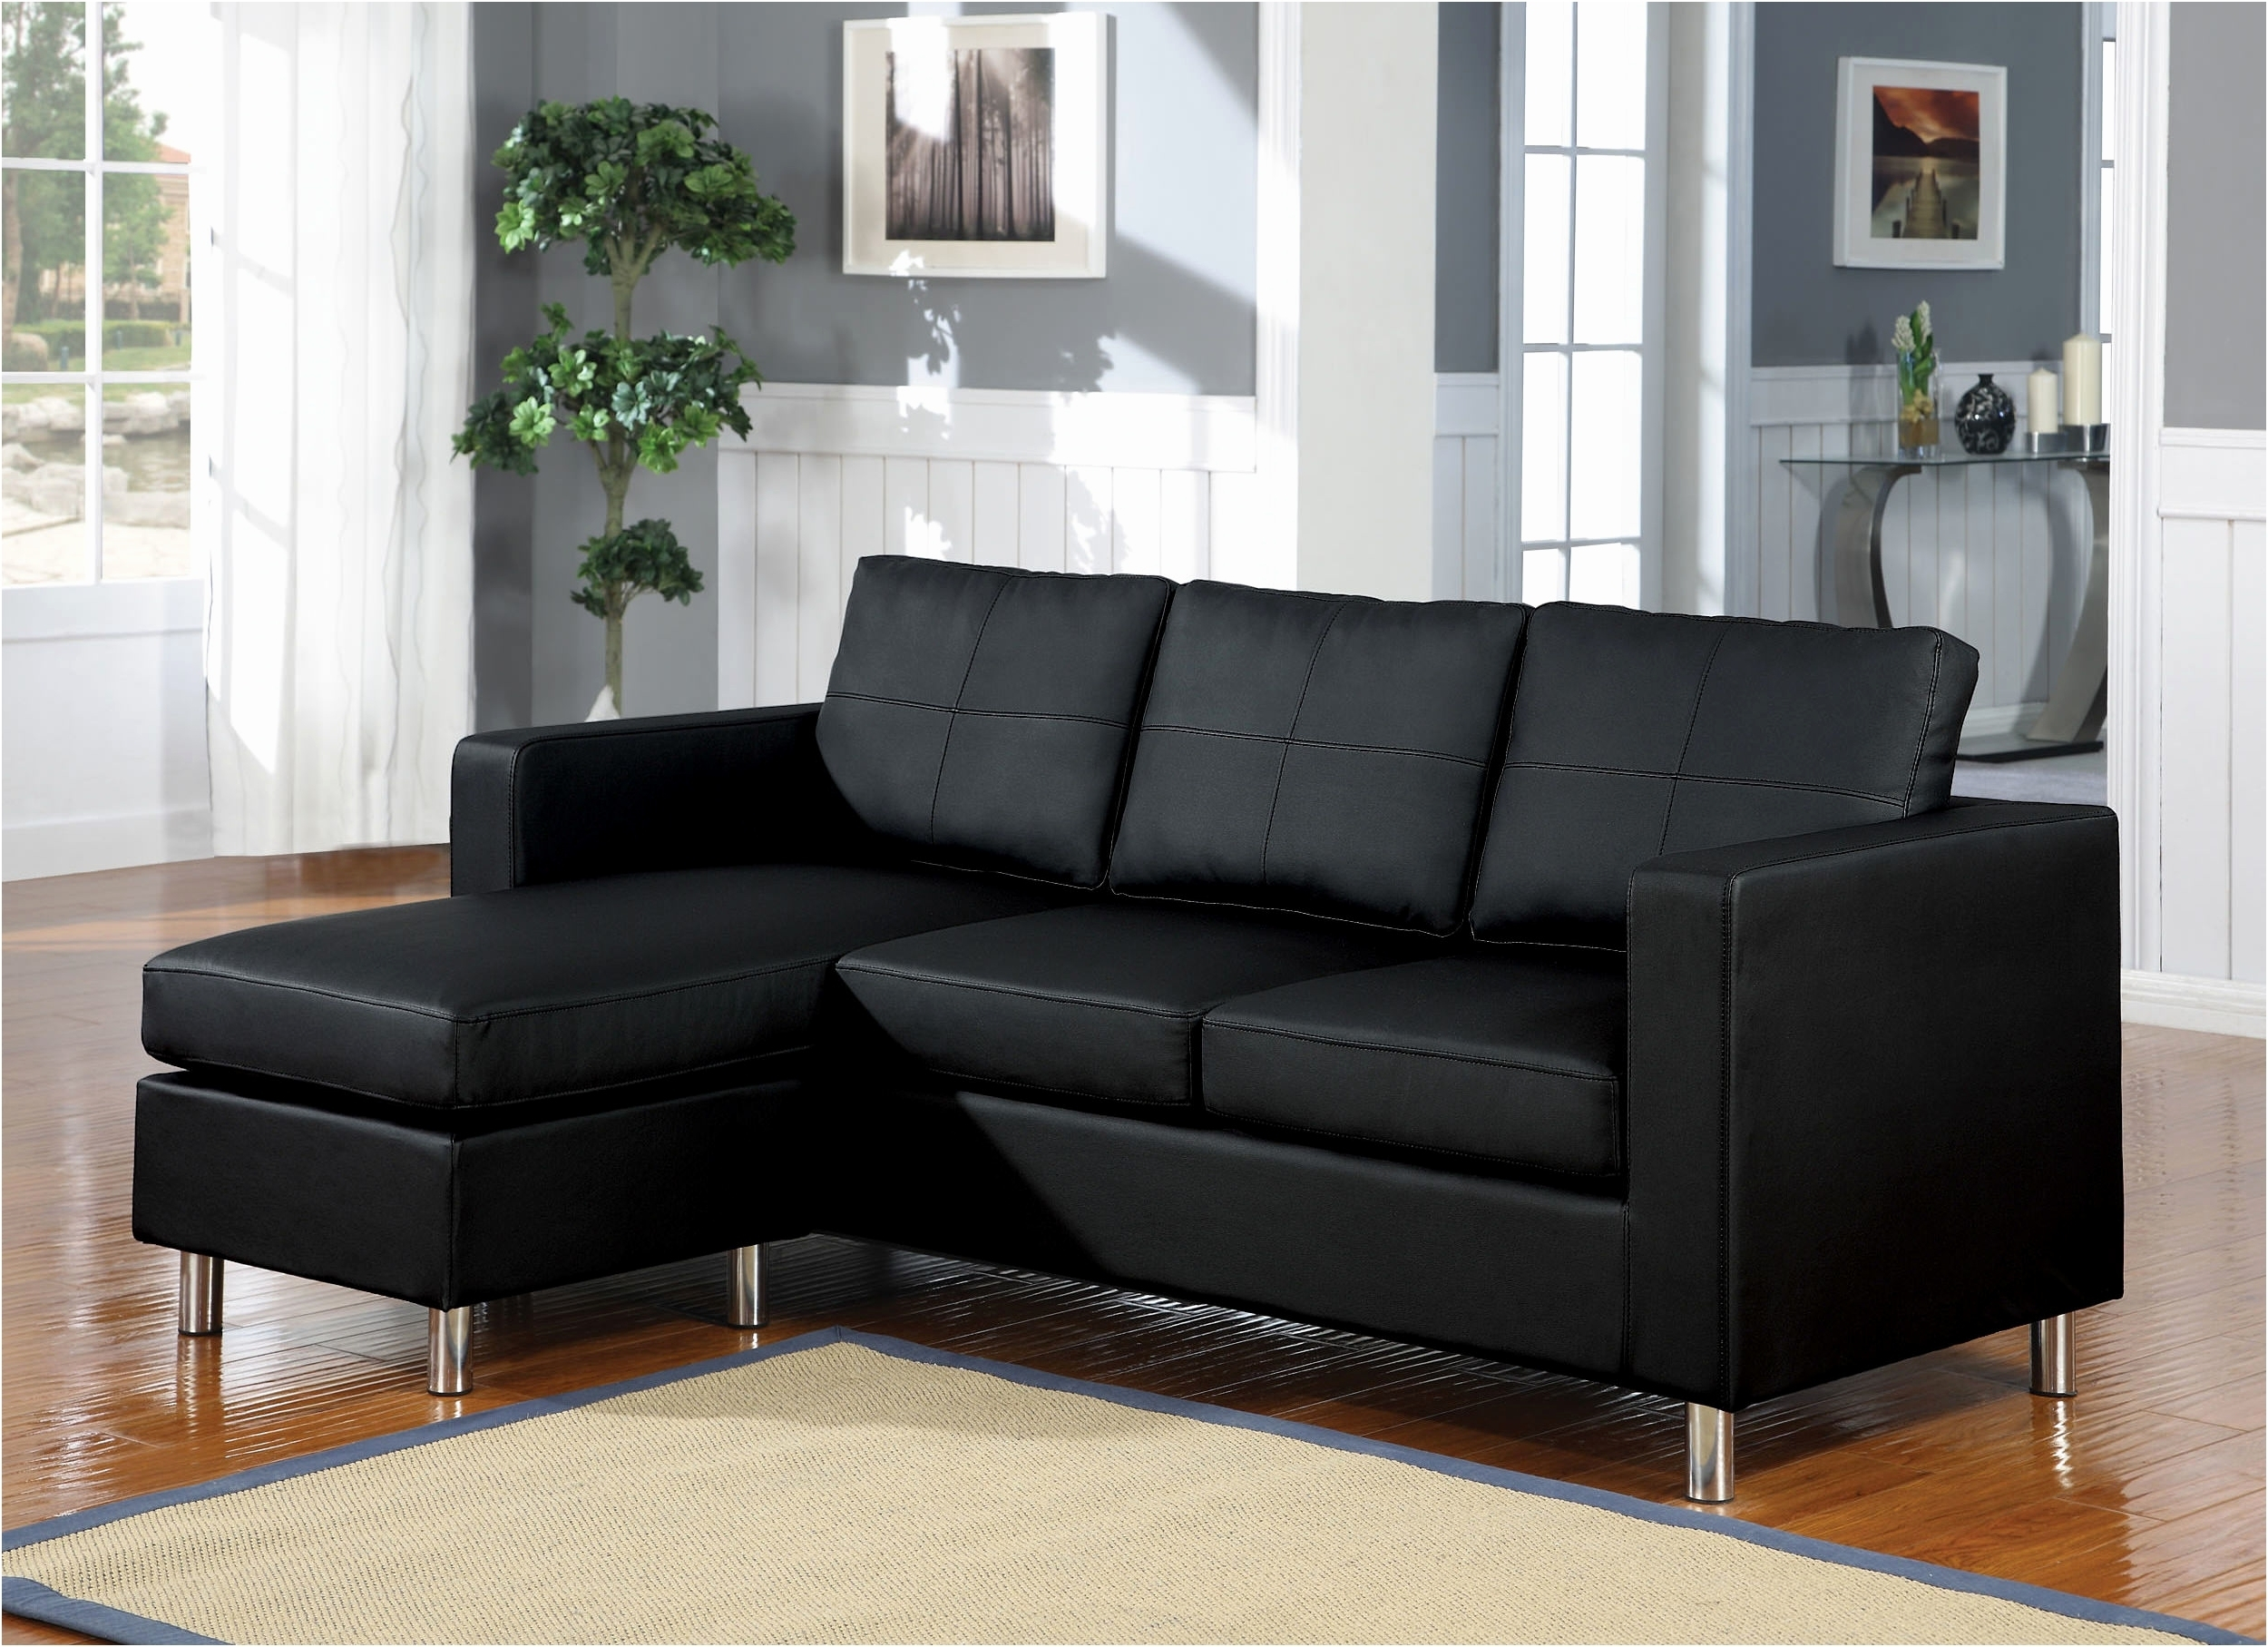 small-leather-sectional-sofa-luxury-furniture-sofa-perfect-small-with-leather-sectional-sofa-leather-sectional-sofa-for-modern-living-room.jpg